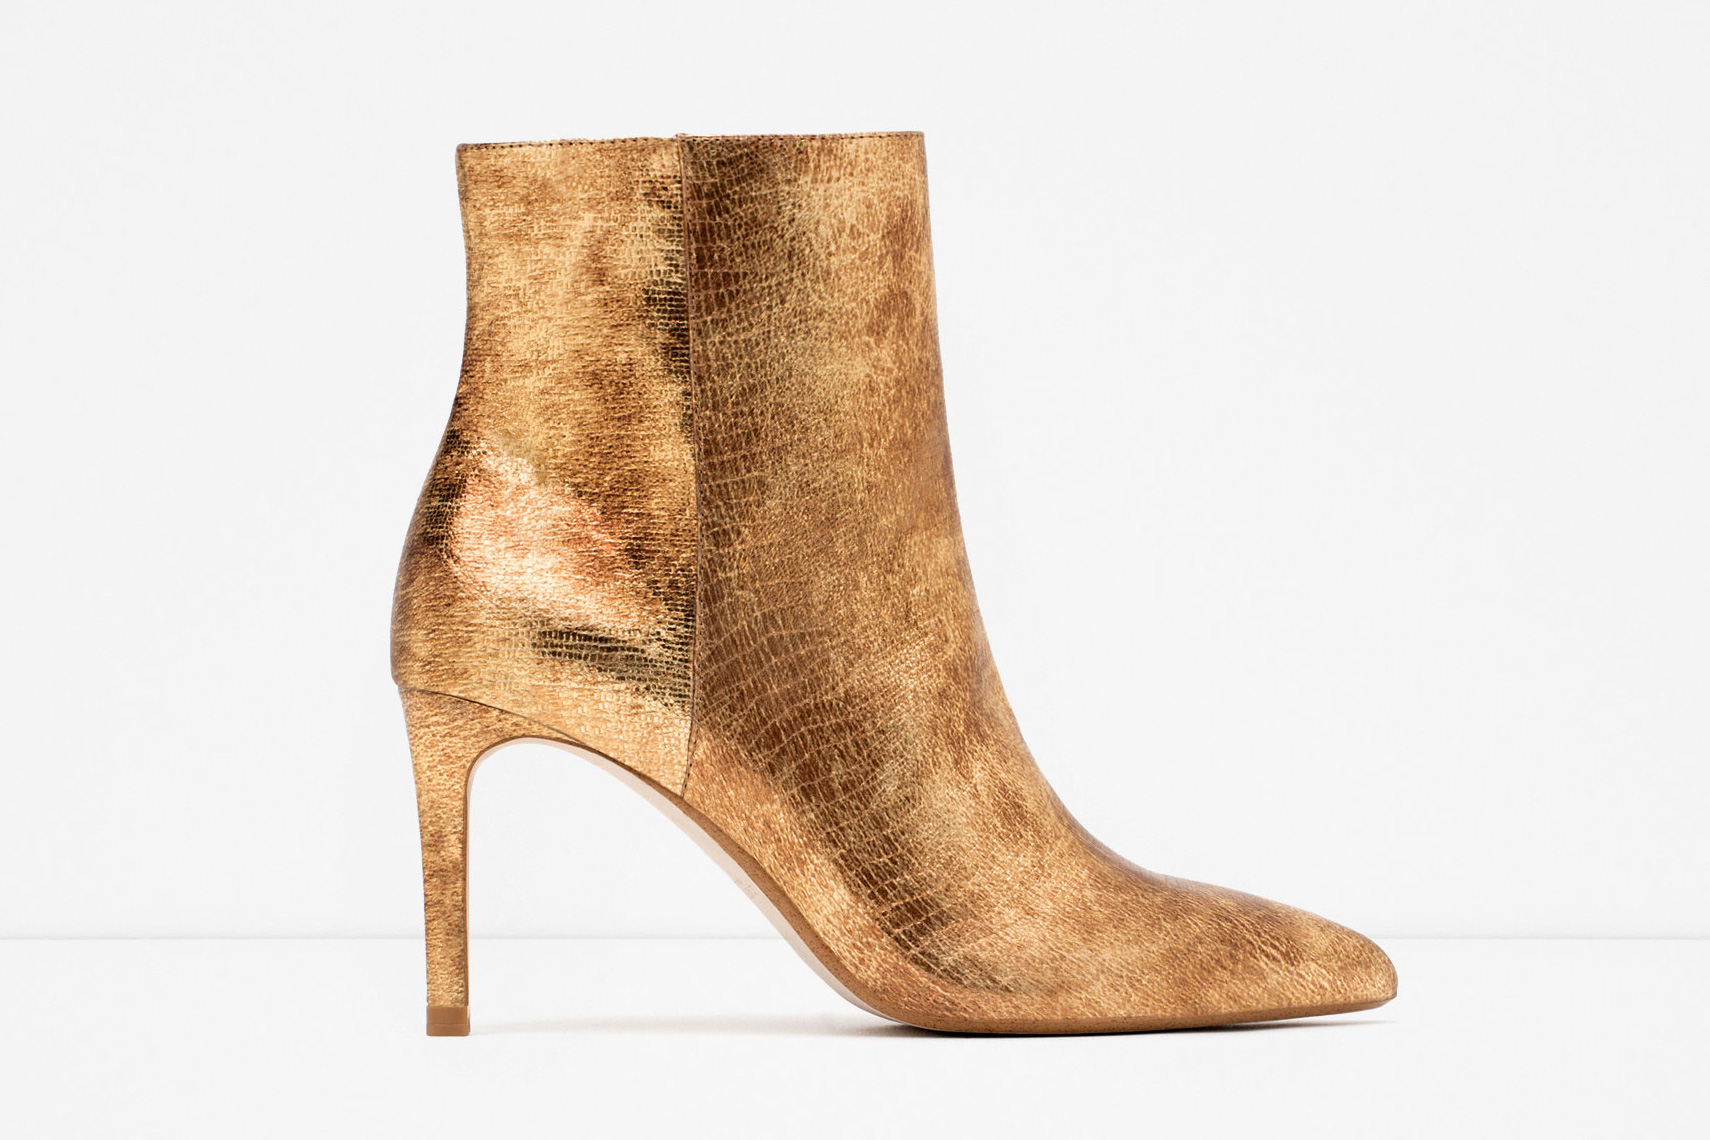 d11e3136036 Be bold – gold ankle boots are sure to get you in the party spirit! £69.99